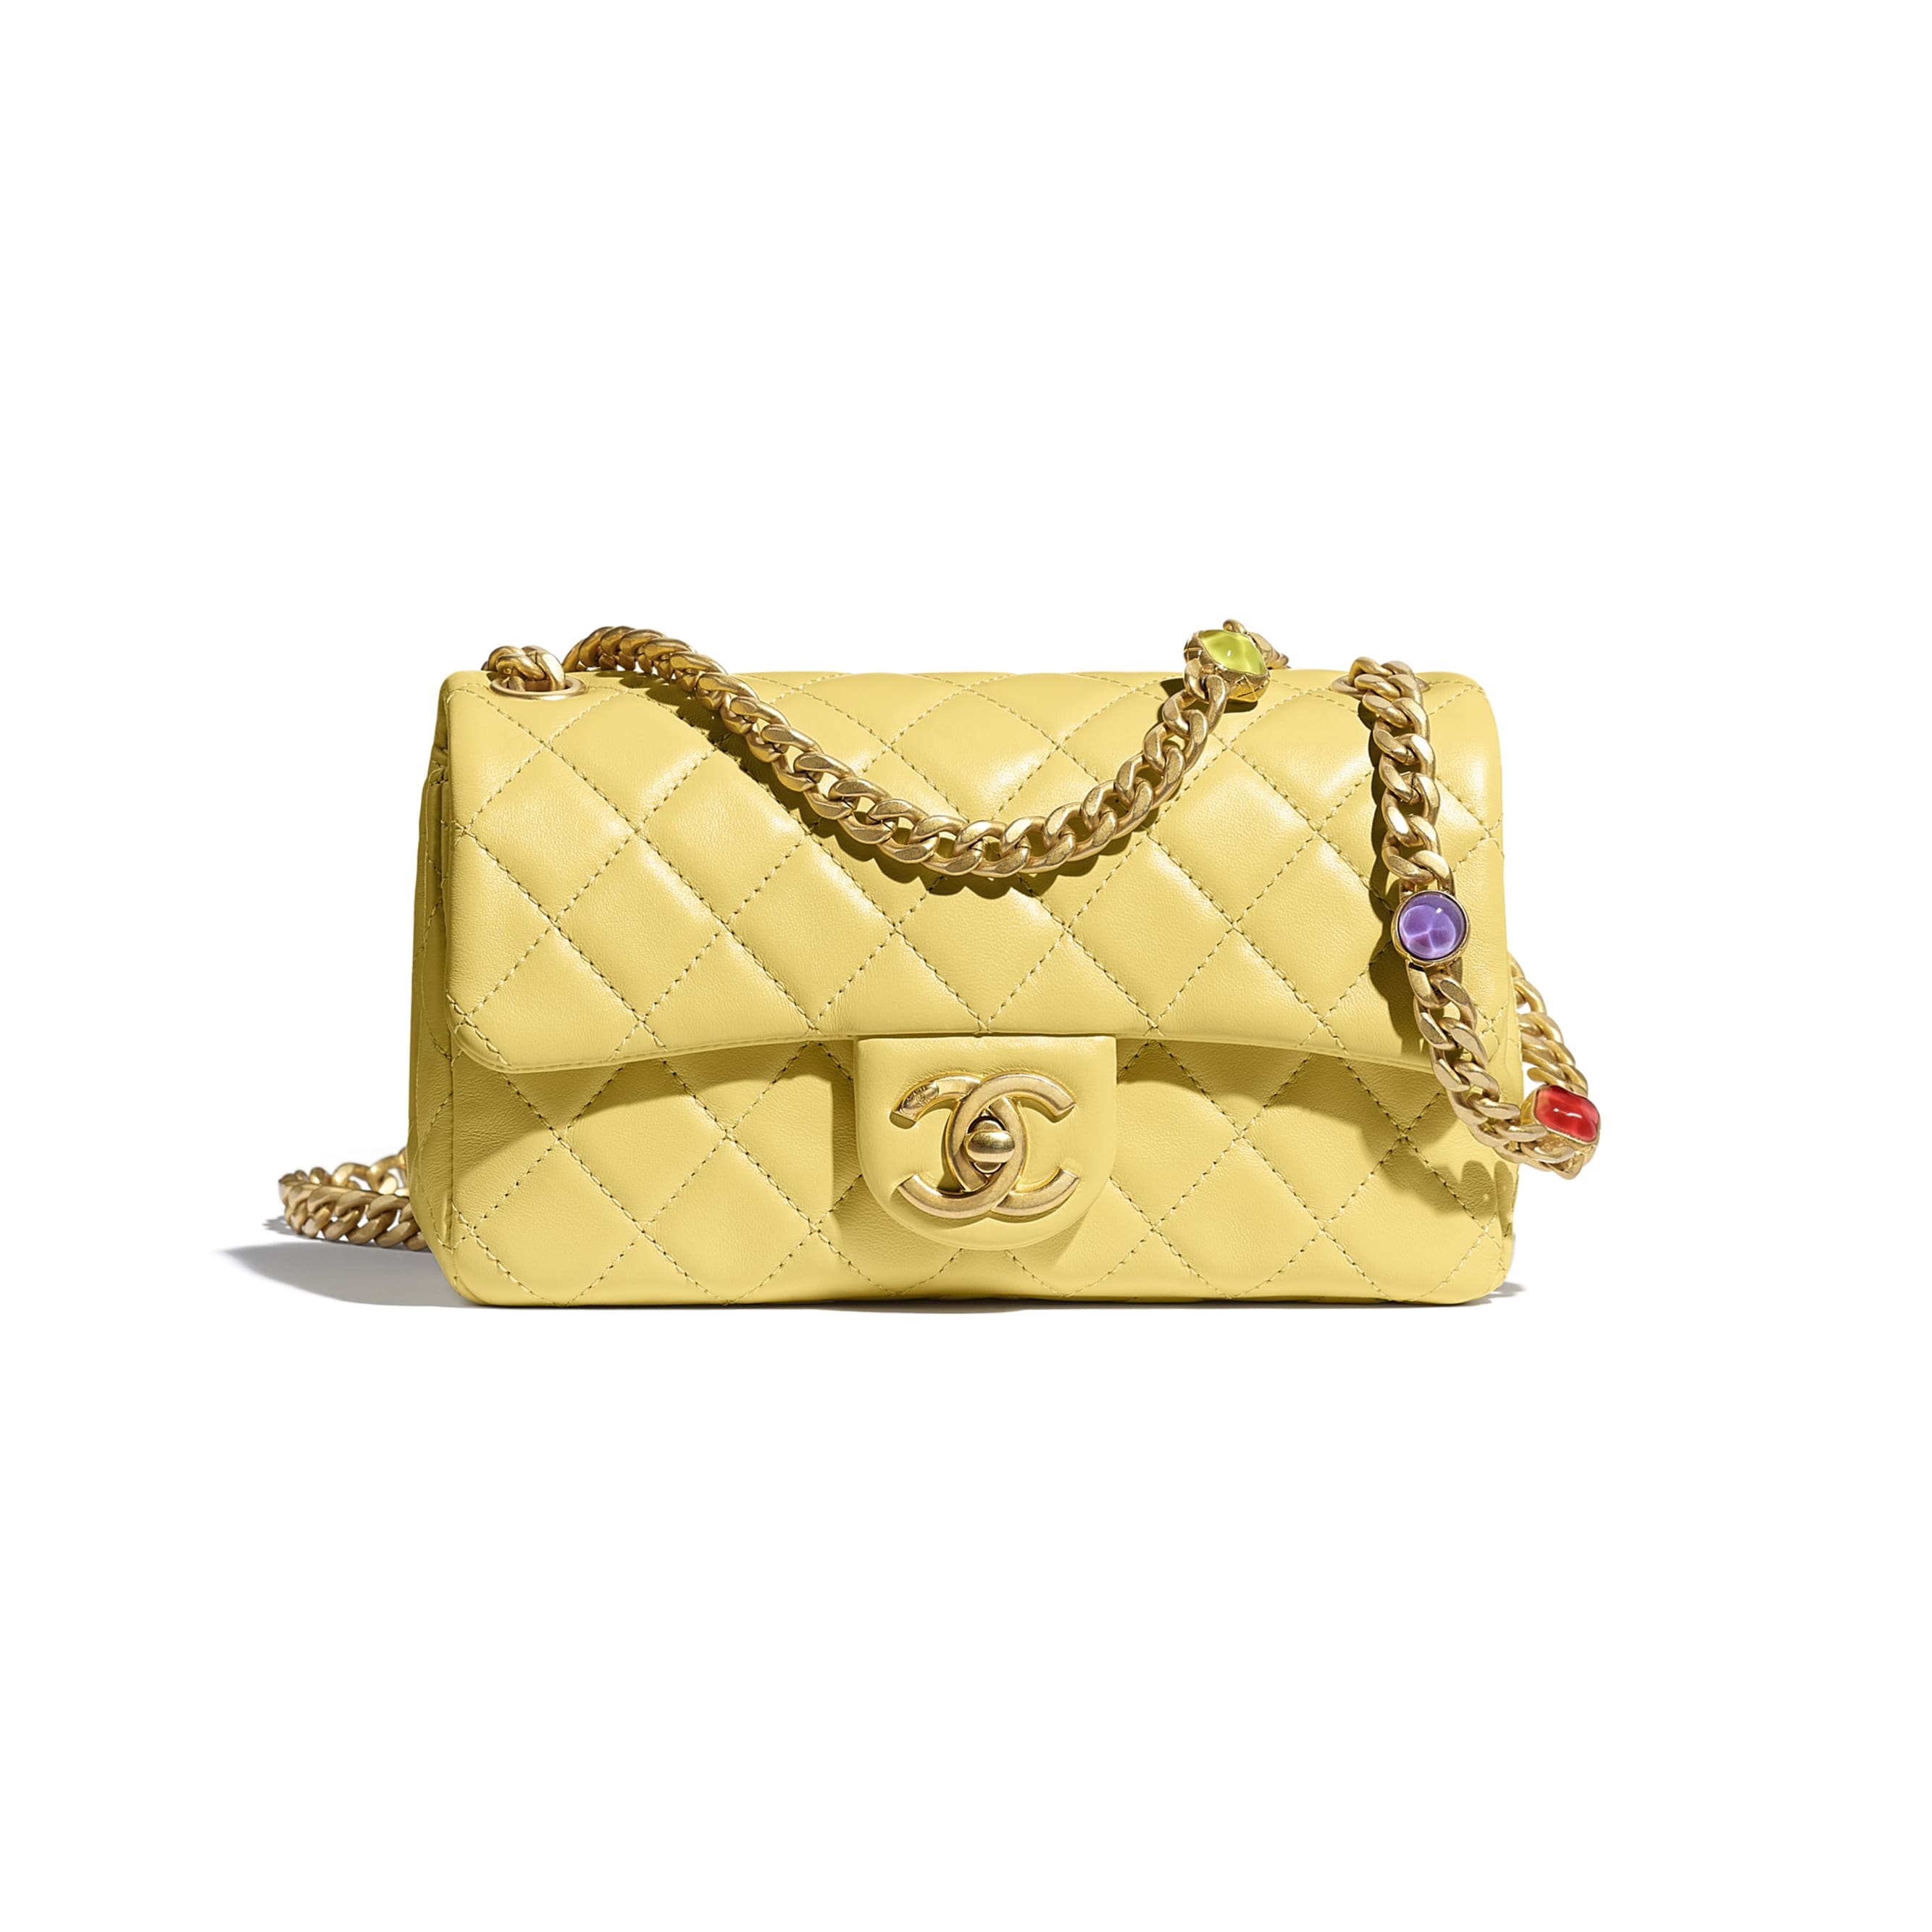 Flap Bag - Yellow - Lambskin, Resin & Gold-Tone Metal - CHANEL - Default view - see standard sized version